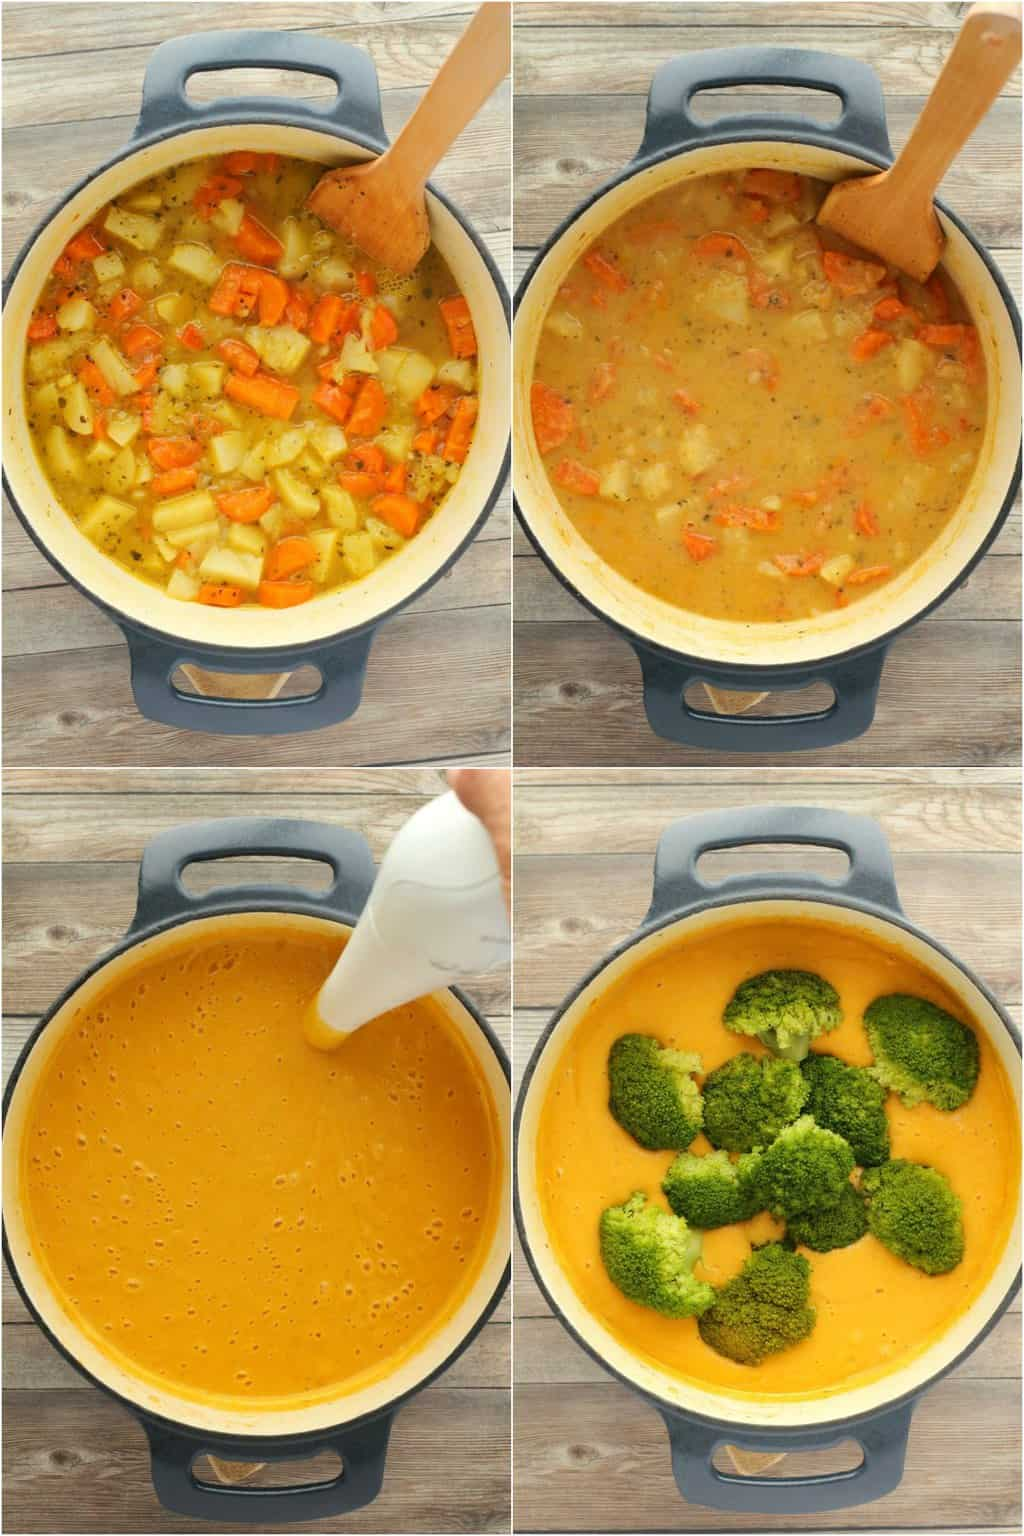 Step by step process photo collage of making vegan broccoli cheese soup.